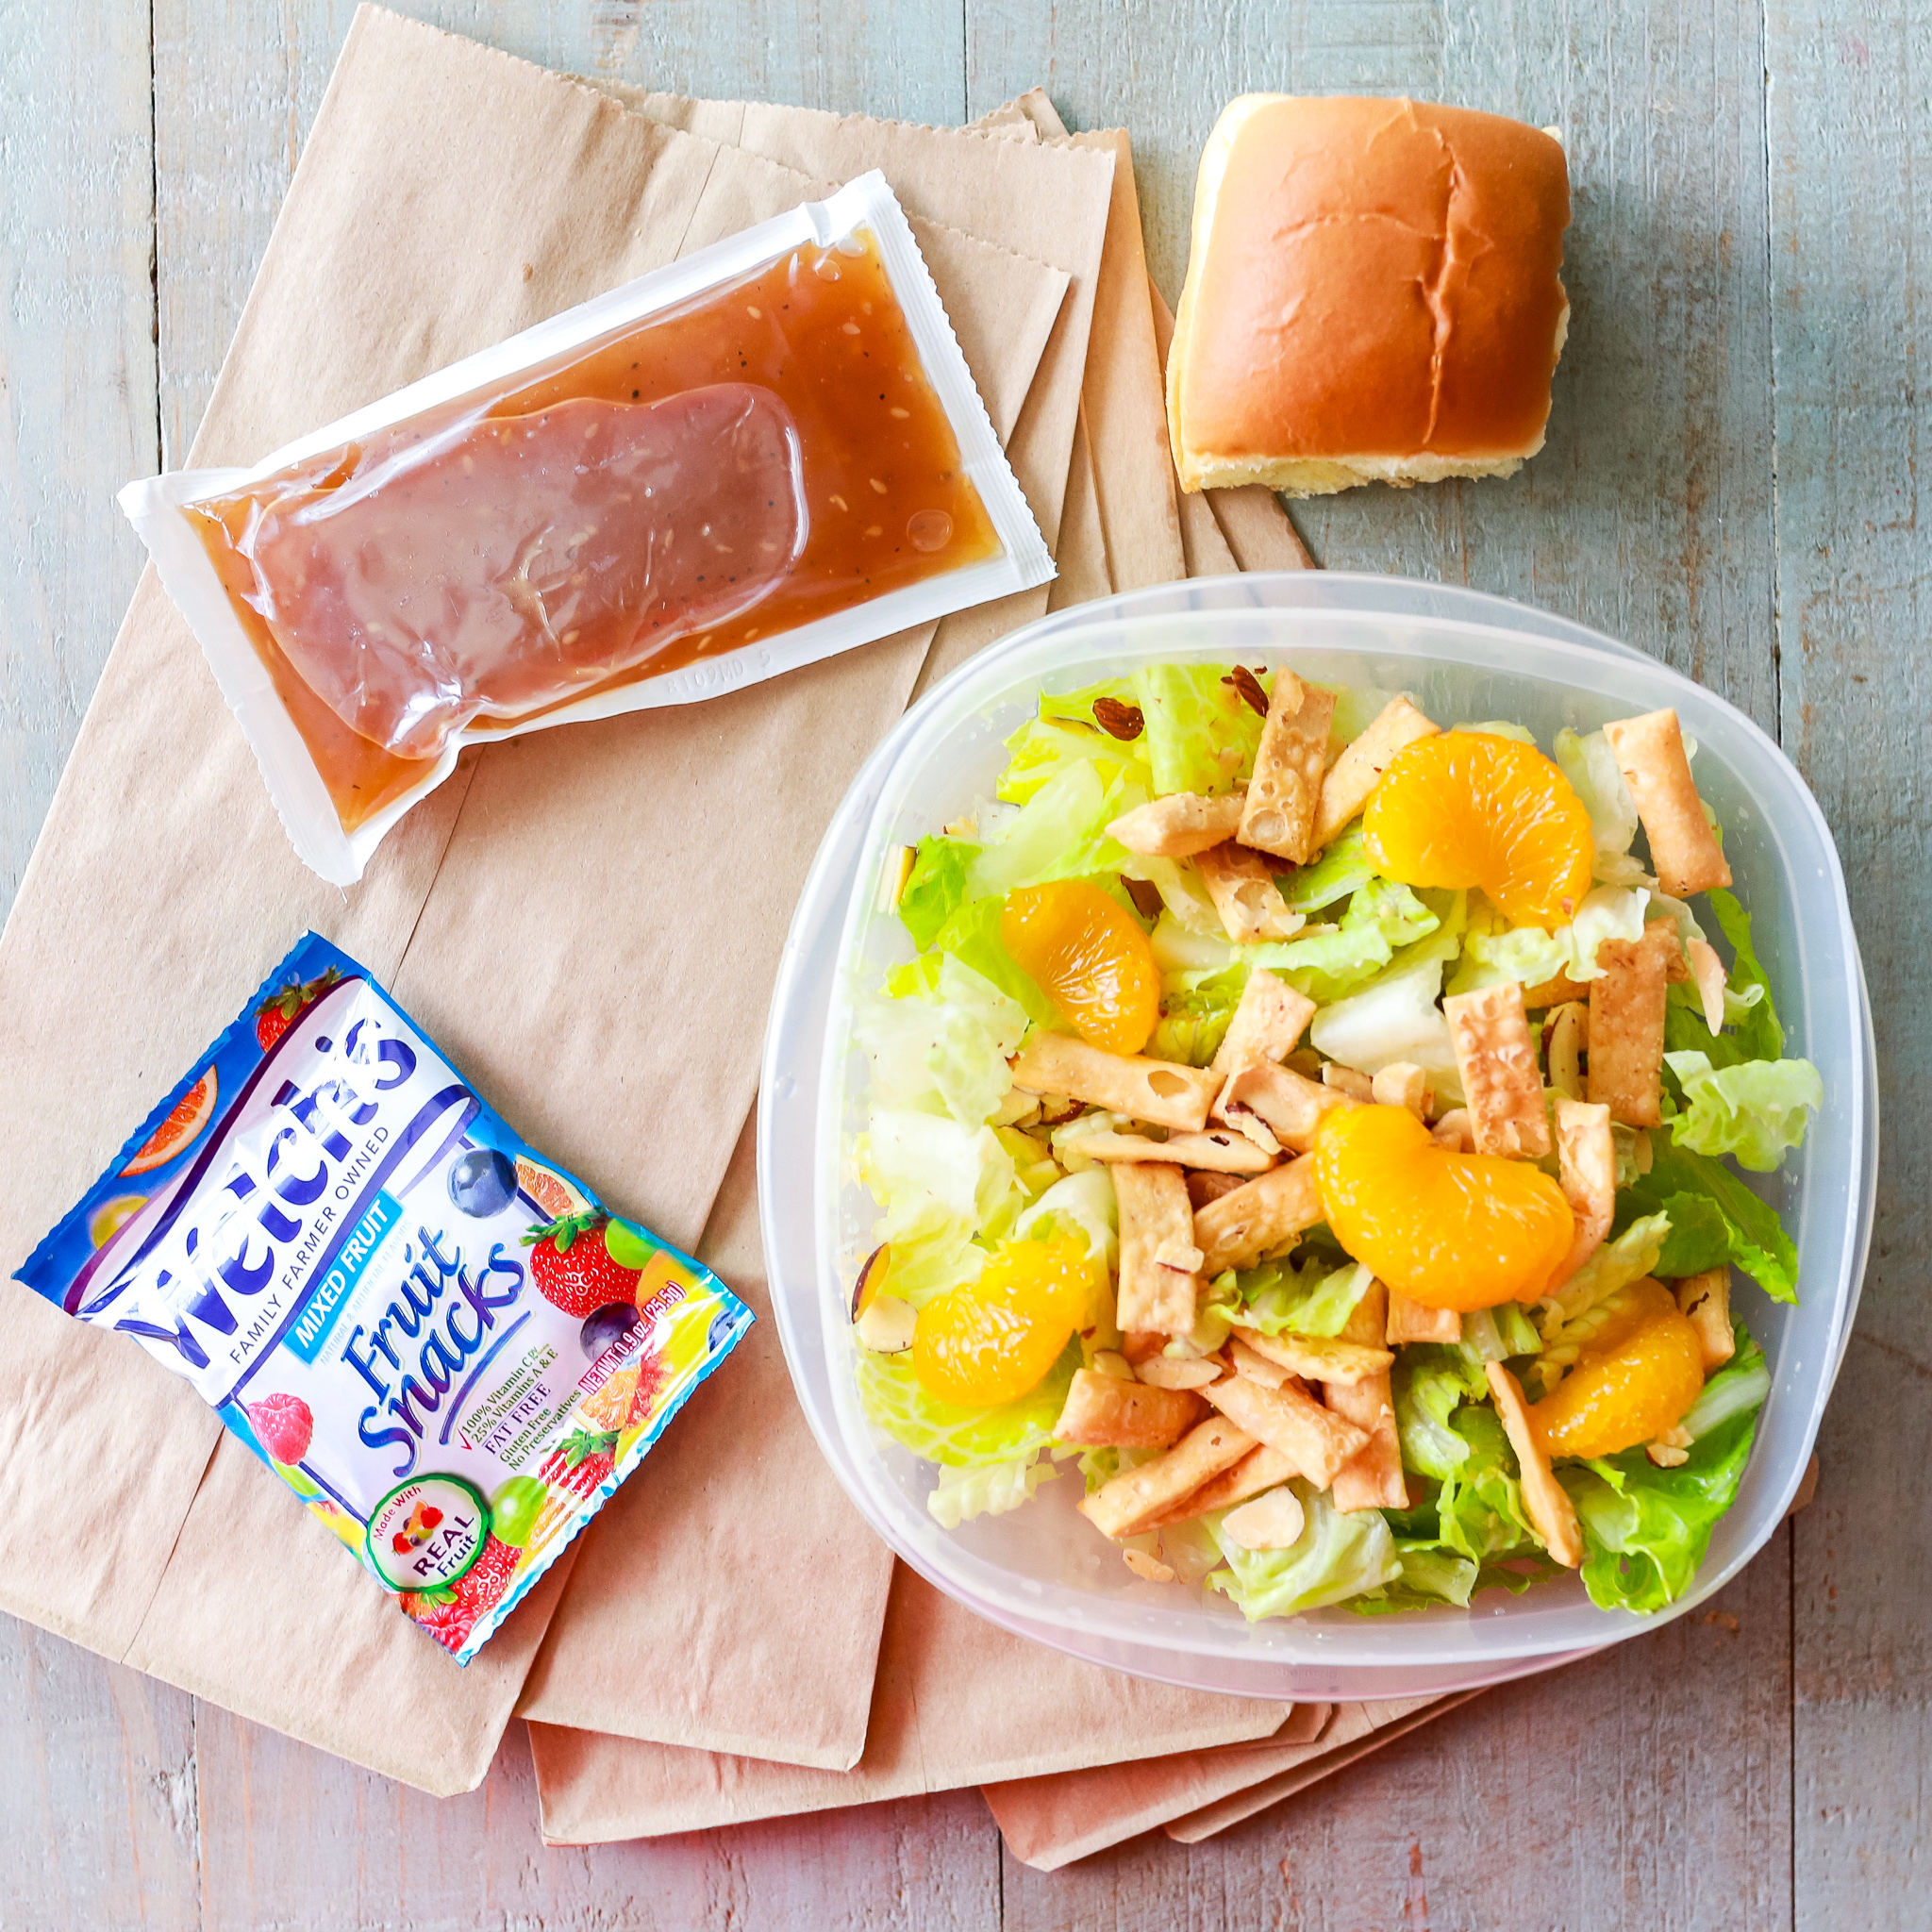 Back to School Lunch Ideas beside a sandwich